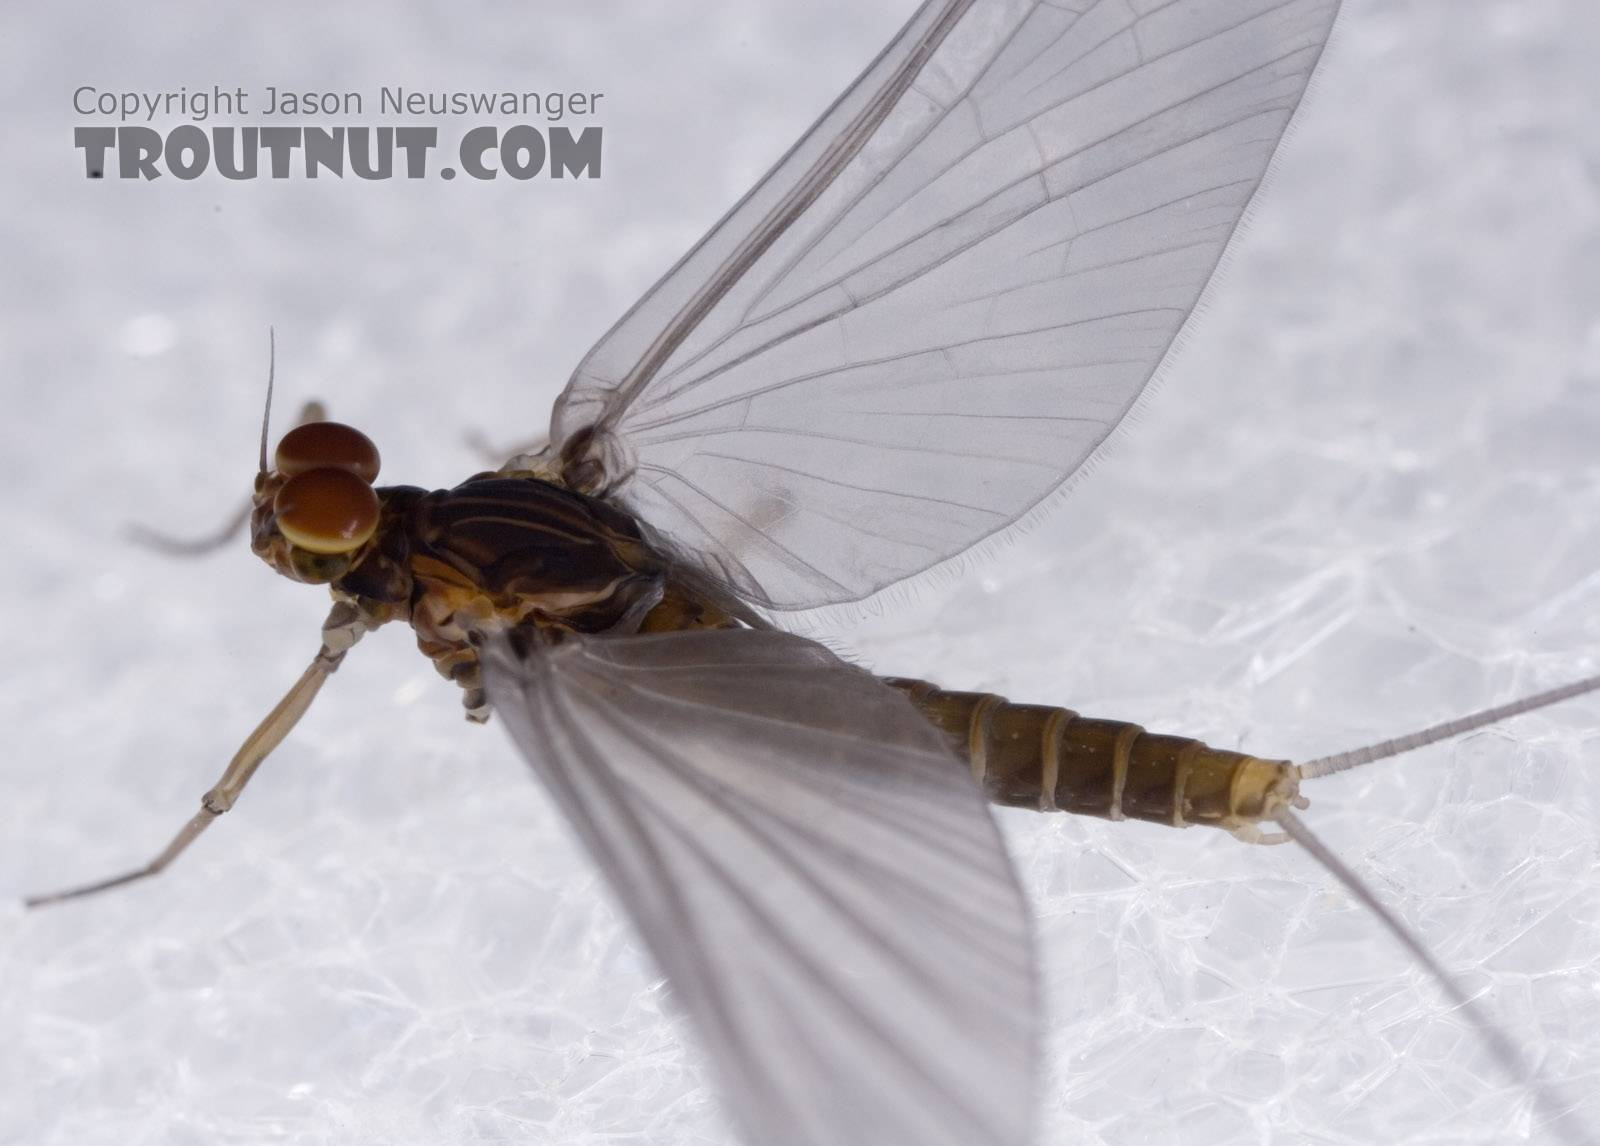 Male Baetis tricaudatus (Blue-Winged Olive) Mayfly Dun from Owasco Inlet in New York